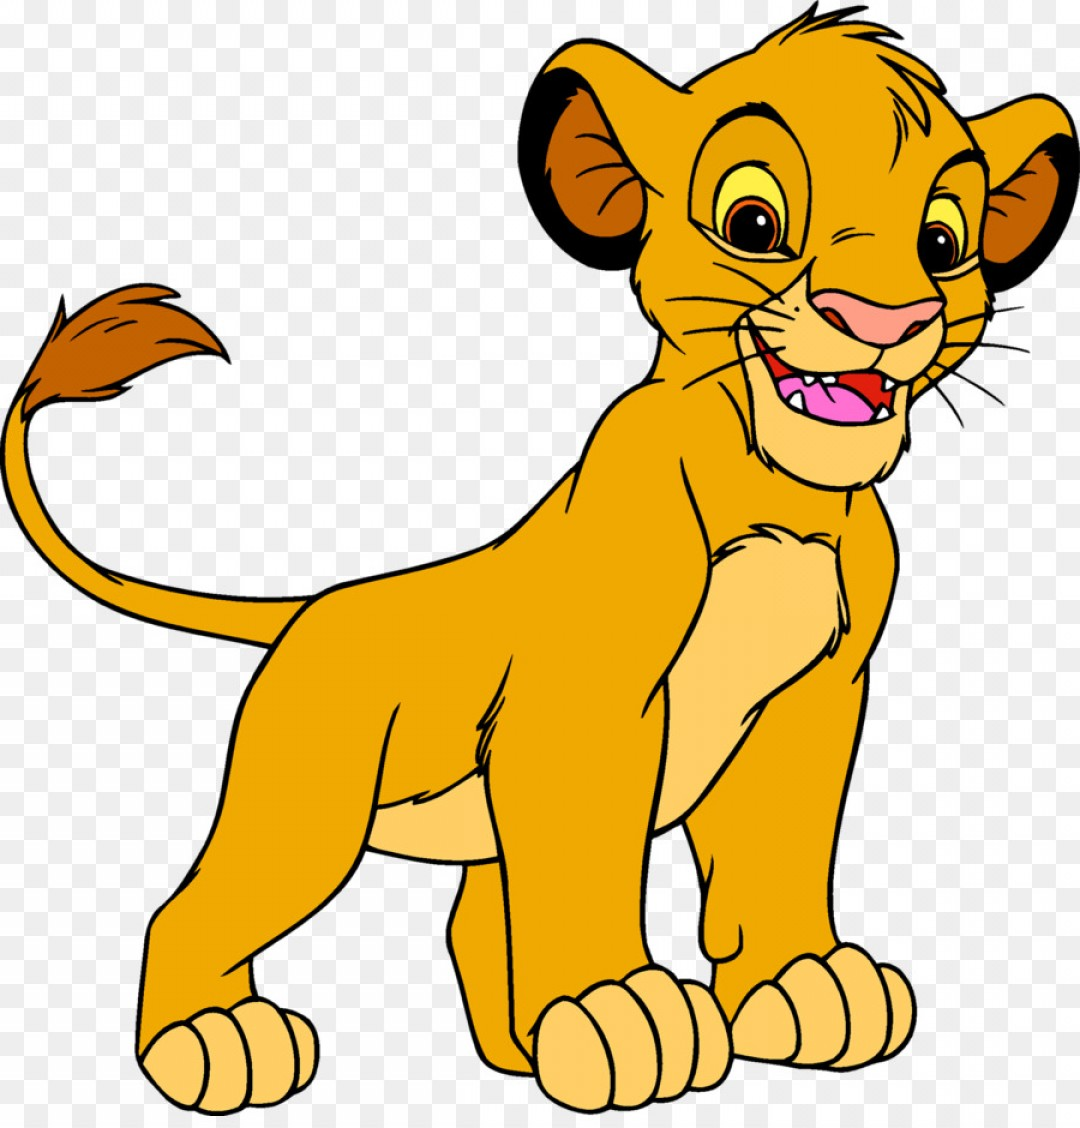 Nala Vector: Png Simba Nala The Lion King Pumbaa Mufasa Lion King